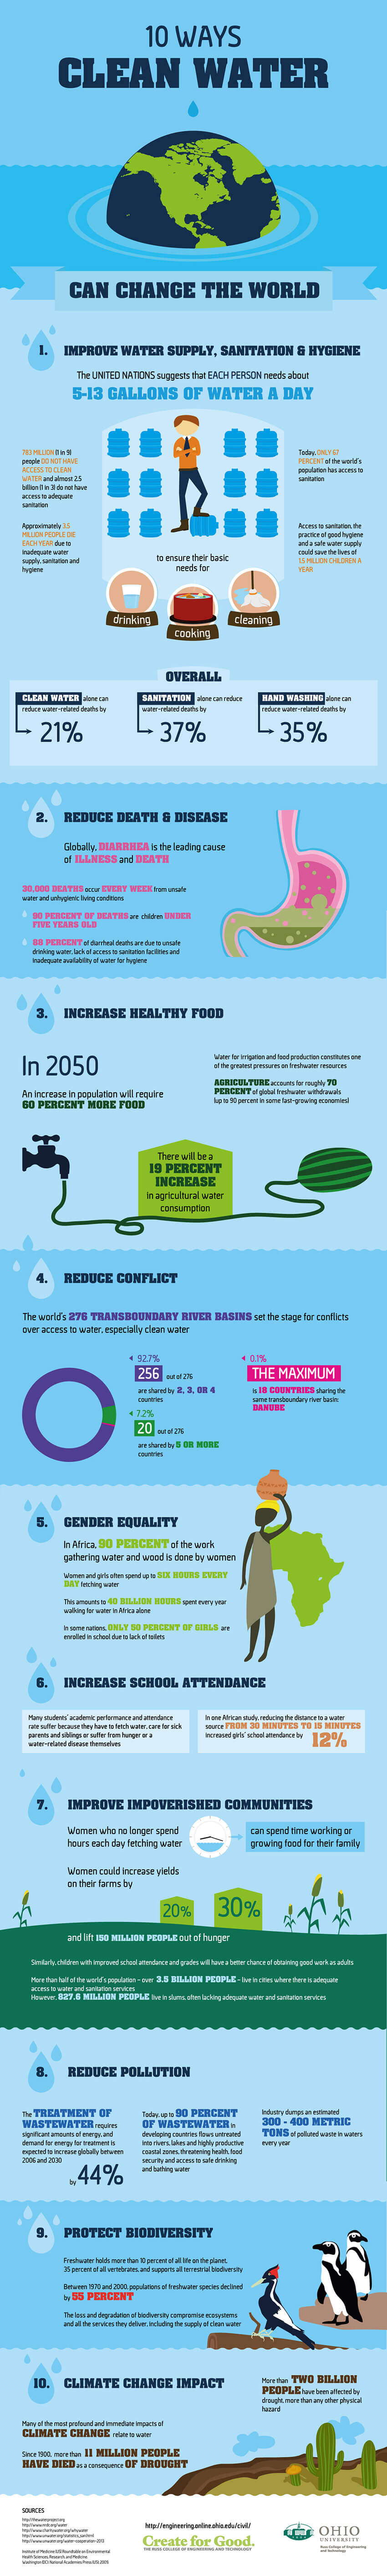 10 Ways Clean Water Can Improve The World infographic